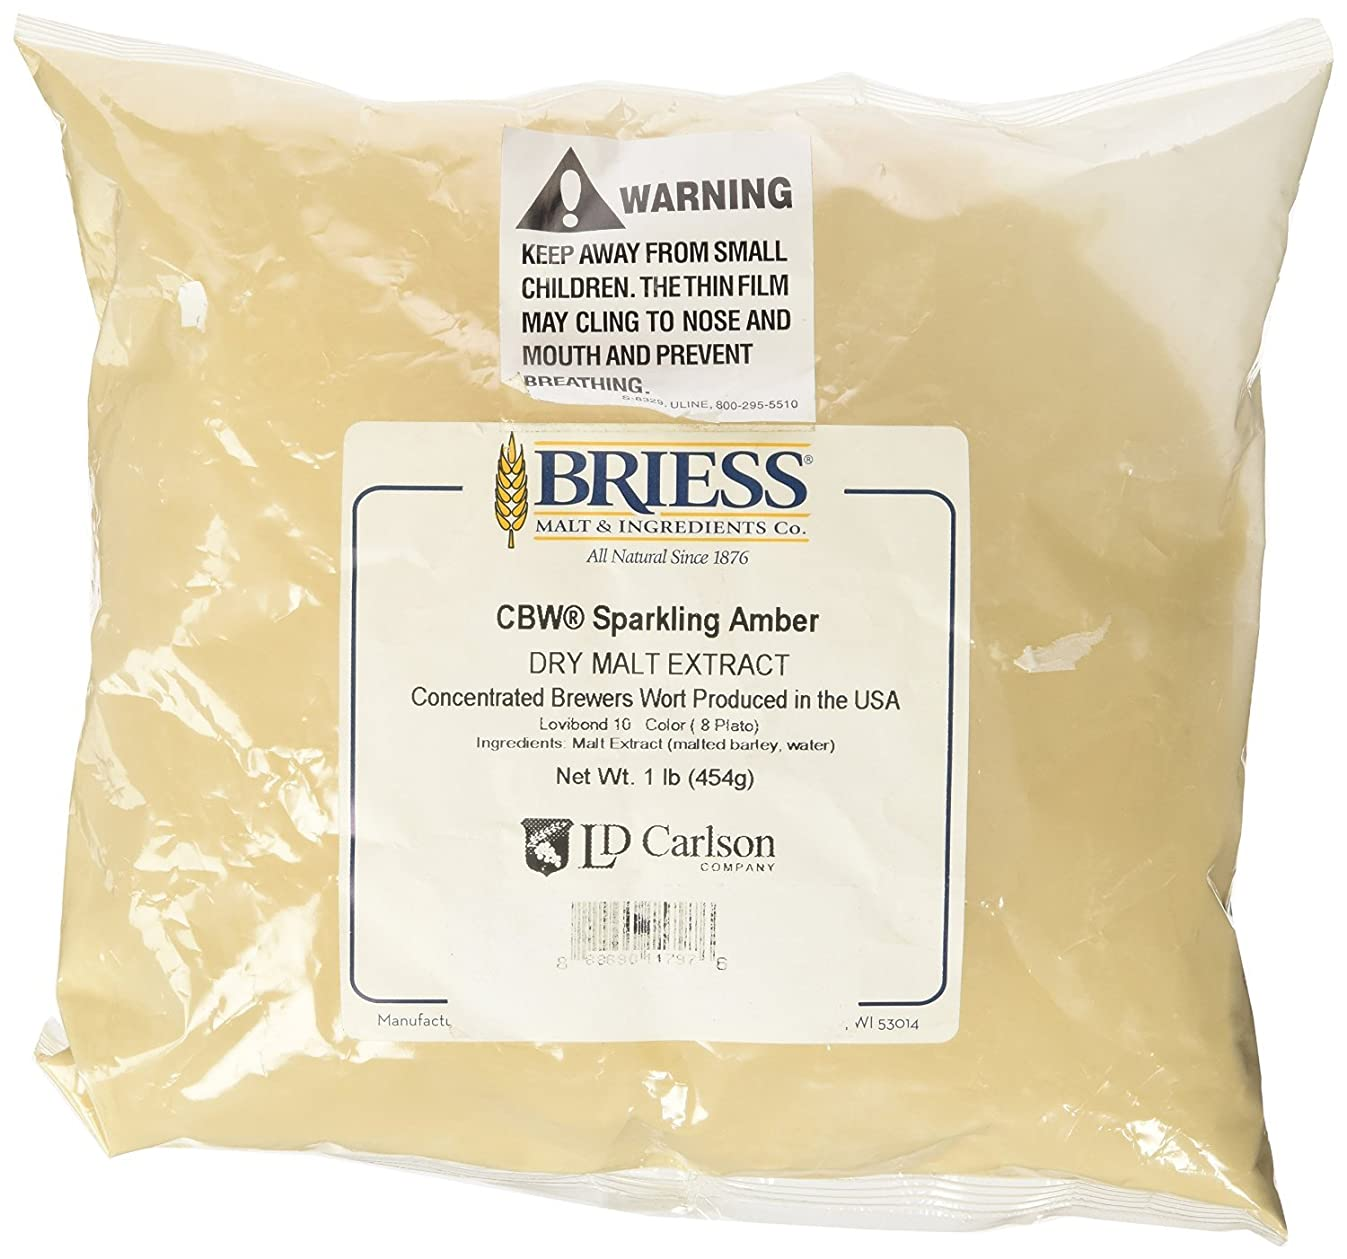 Briess CBW Dry Malt Extract (DME) for Home Beer Brewing (Sparkling Amber, 1 lb.)